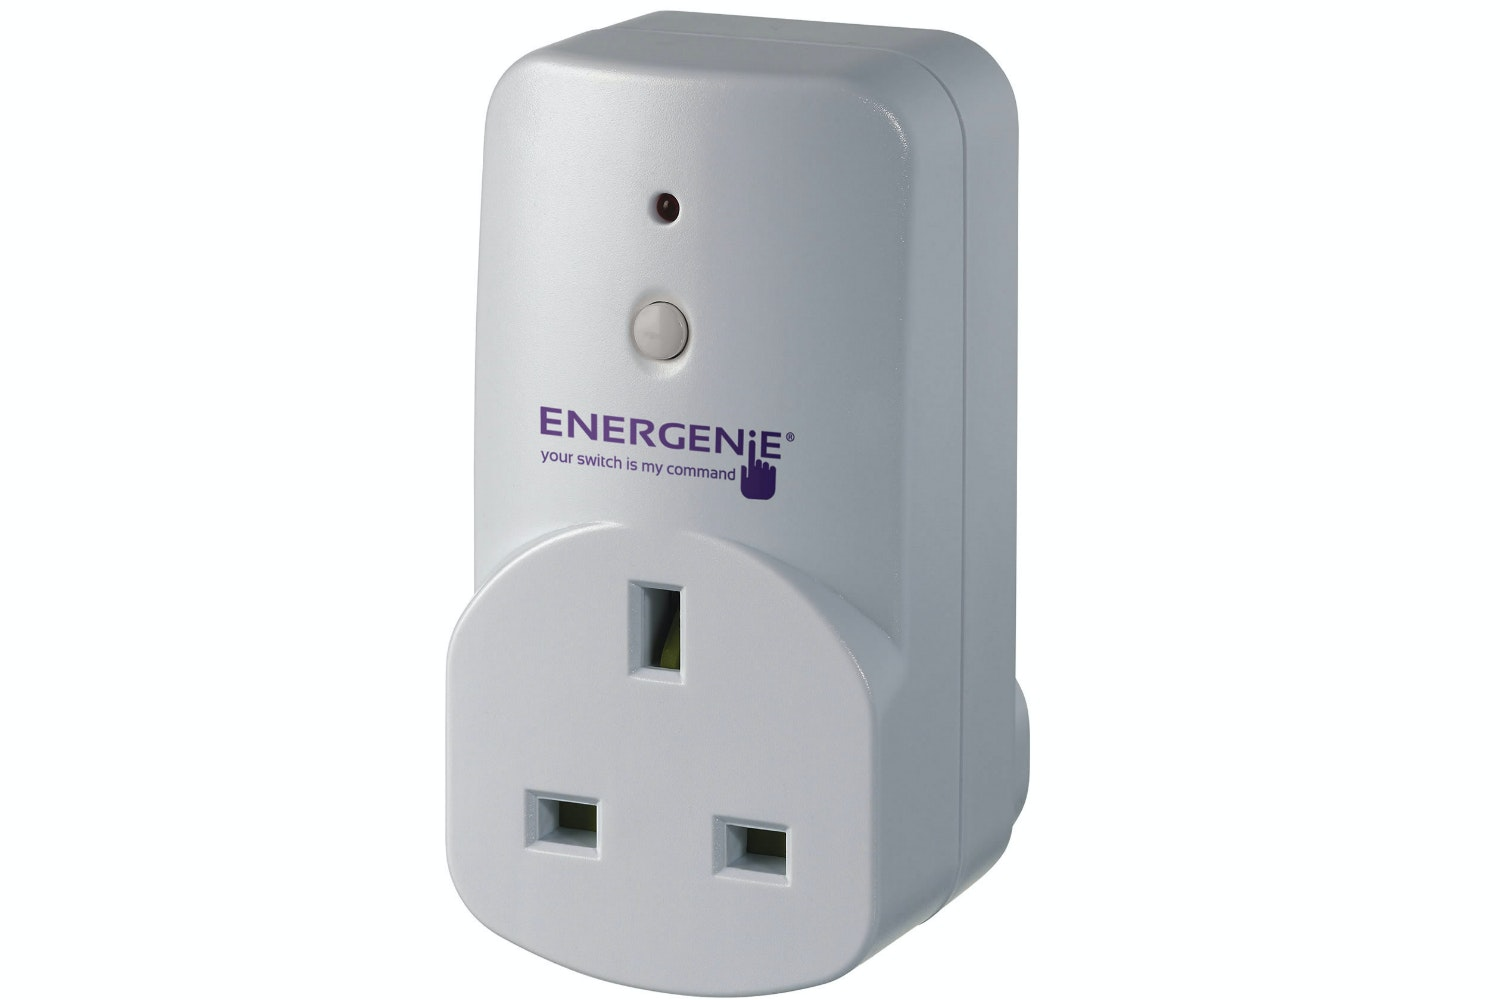 Energenie Mi Home Adapter Plus Control